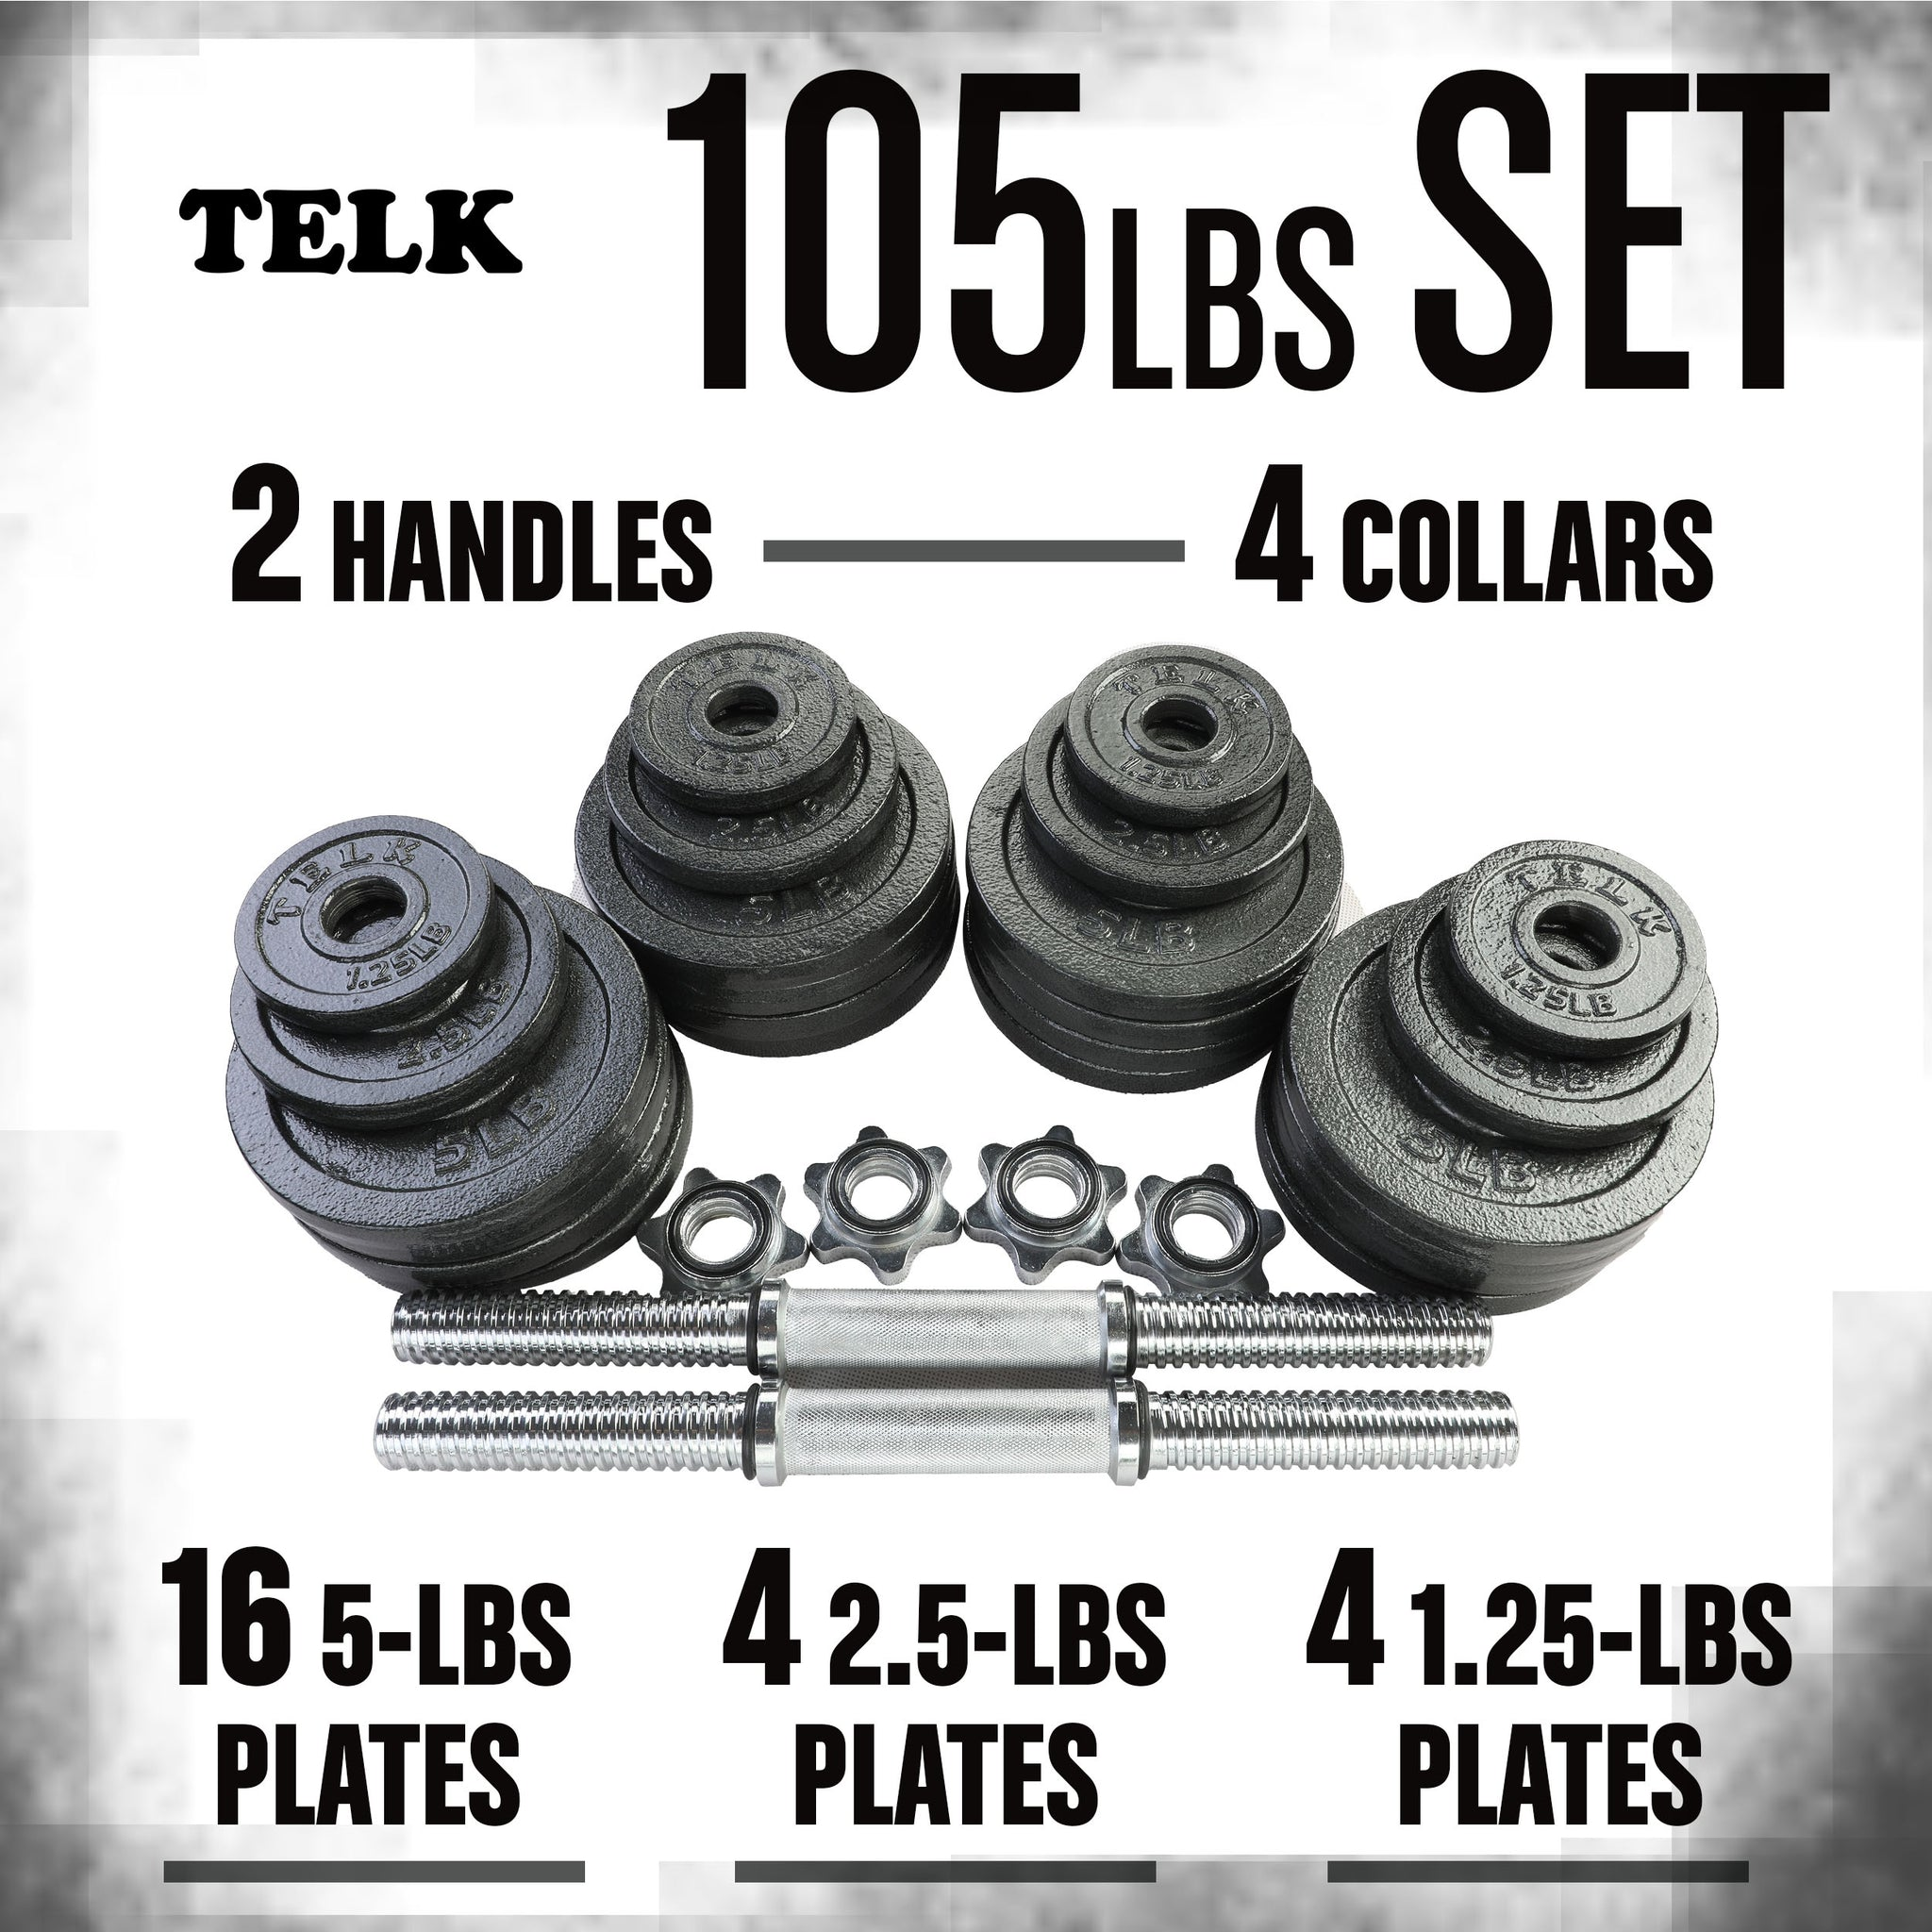 Adjustable Dumbbells 105 lbs